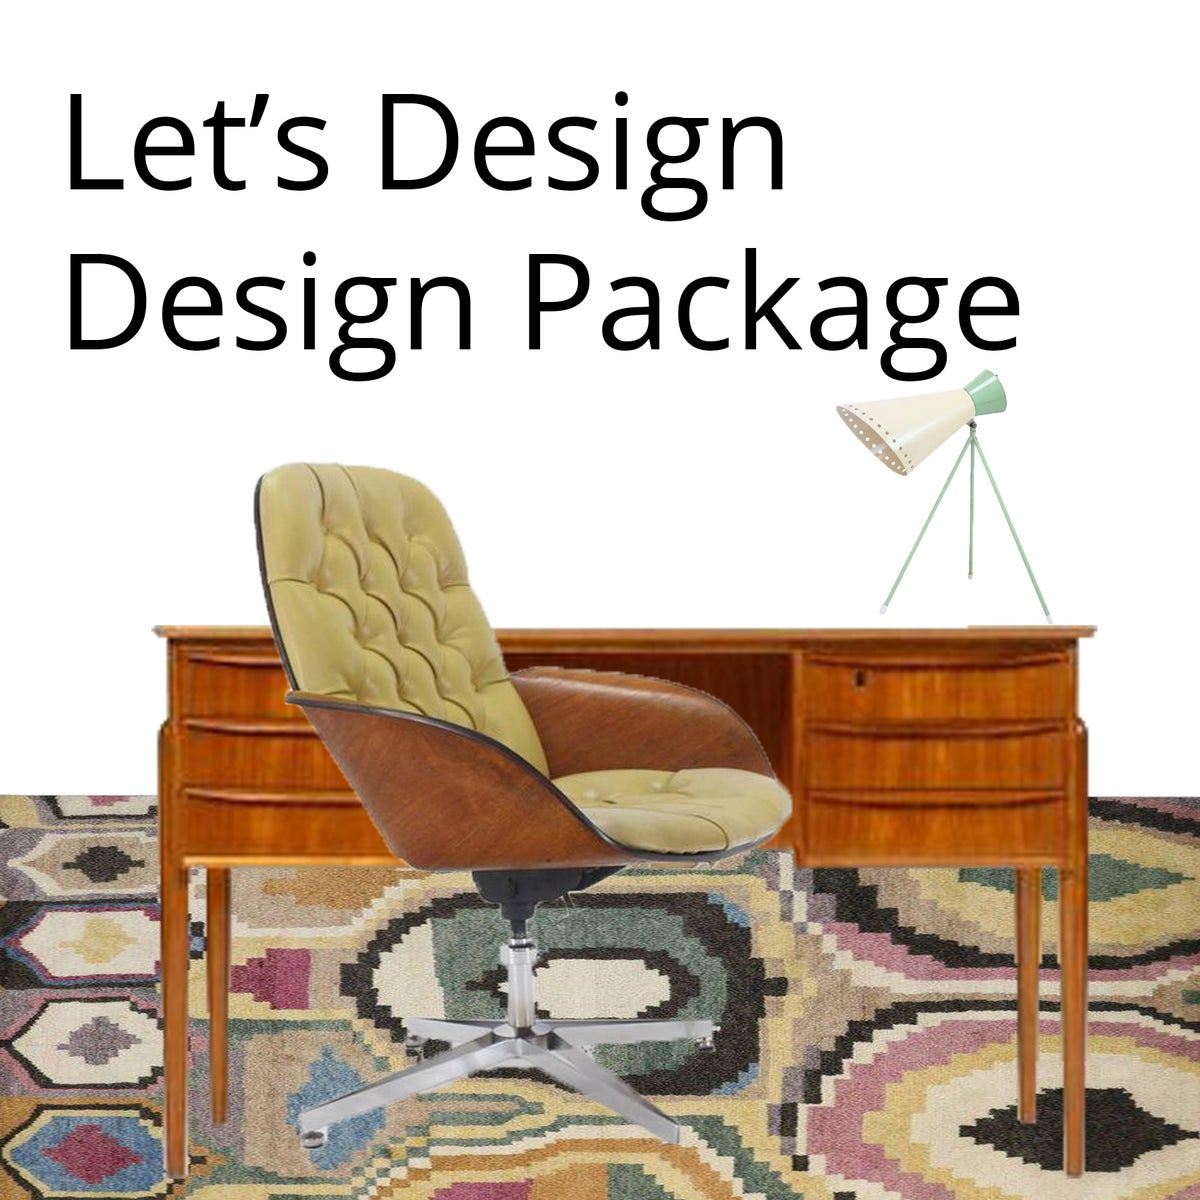 Image of Let's Design Package